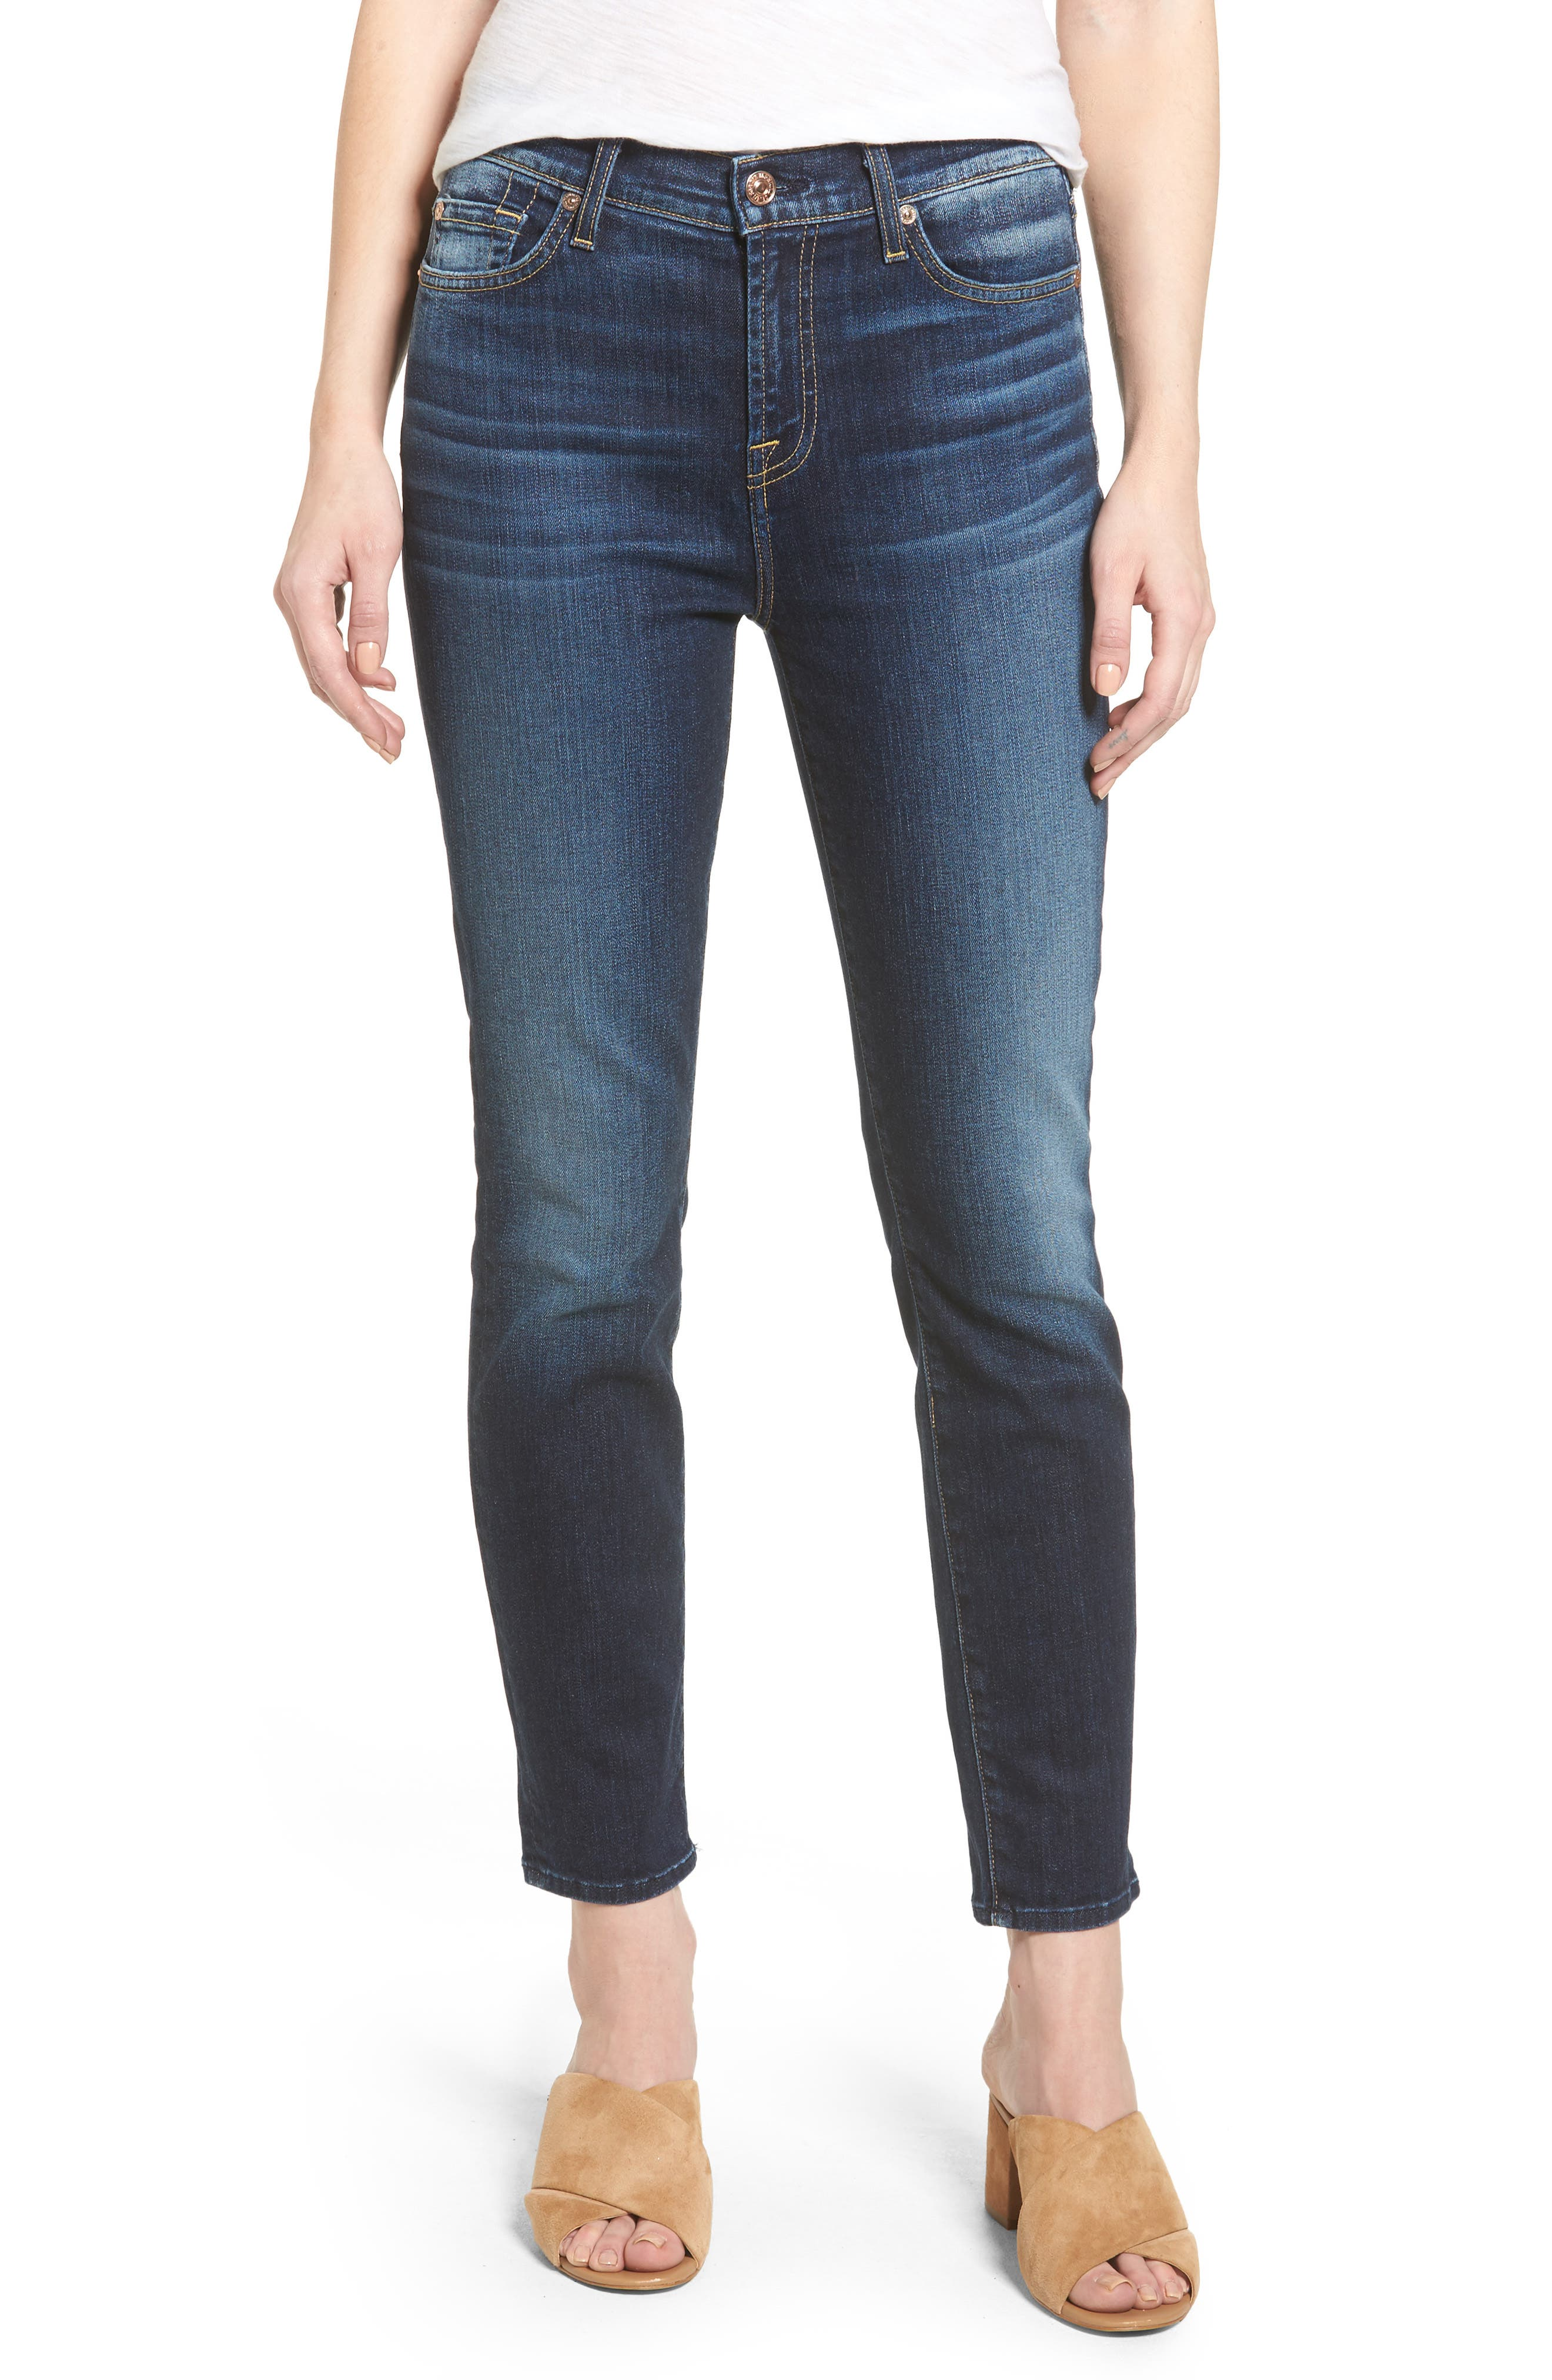 Main Image - Seven7 Roxanne High Waist Ankle Jeans (Aggressive Madison Ave)